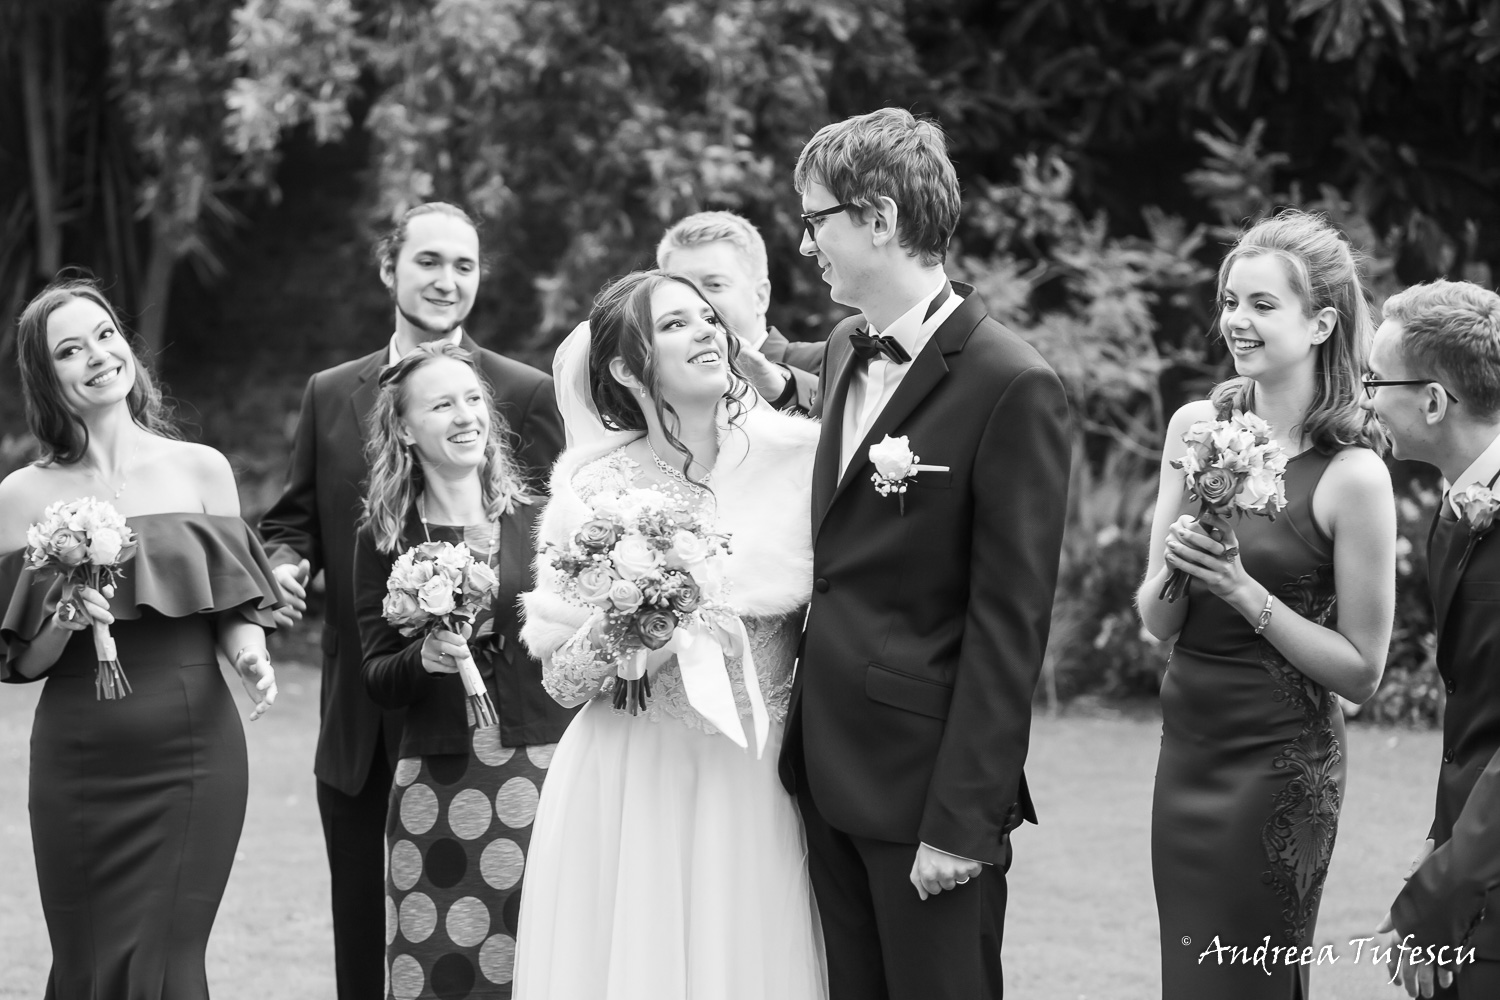 Wedding Photography by Andreea Tufescu - K & M Alternative Wedding - Kew Gardens wedding West London